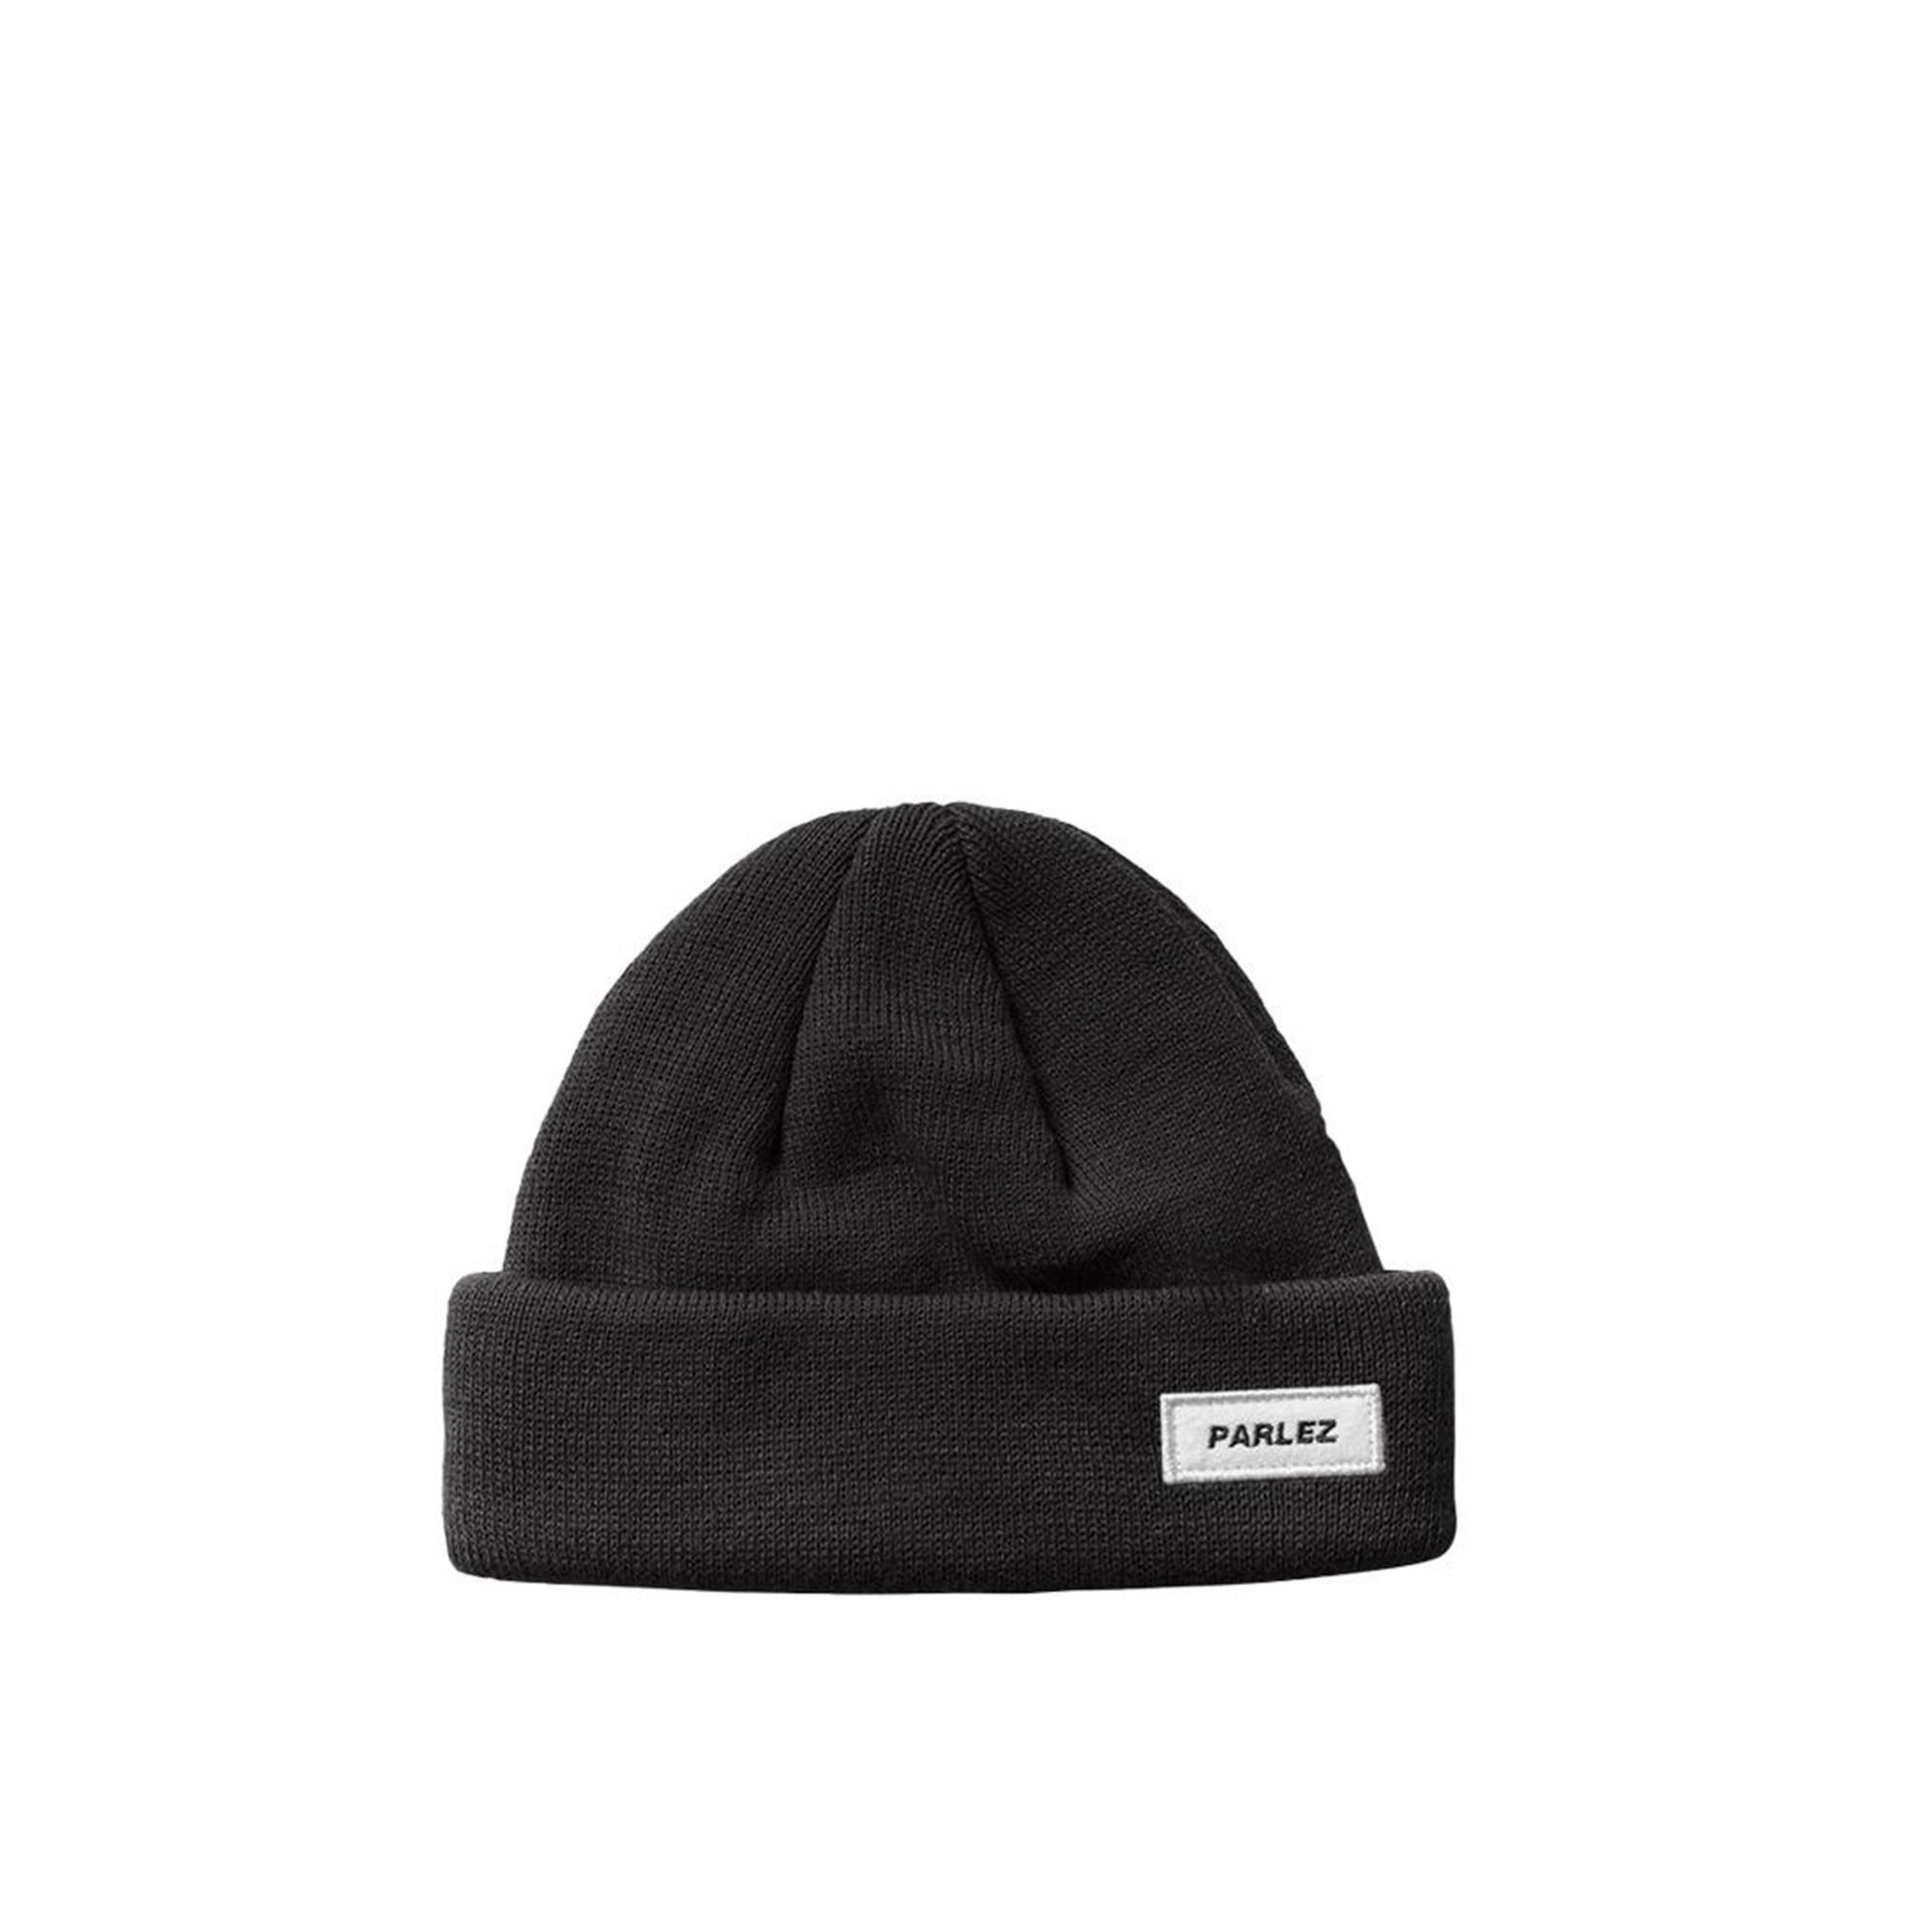 Parlez Charlton Beanie: Black - The Union Project